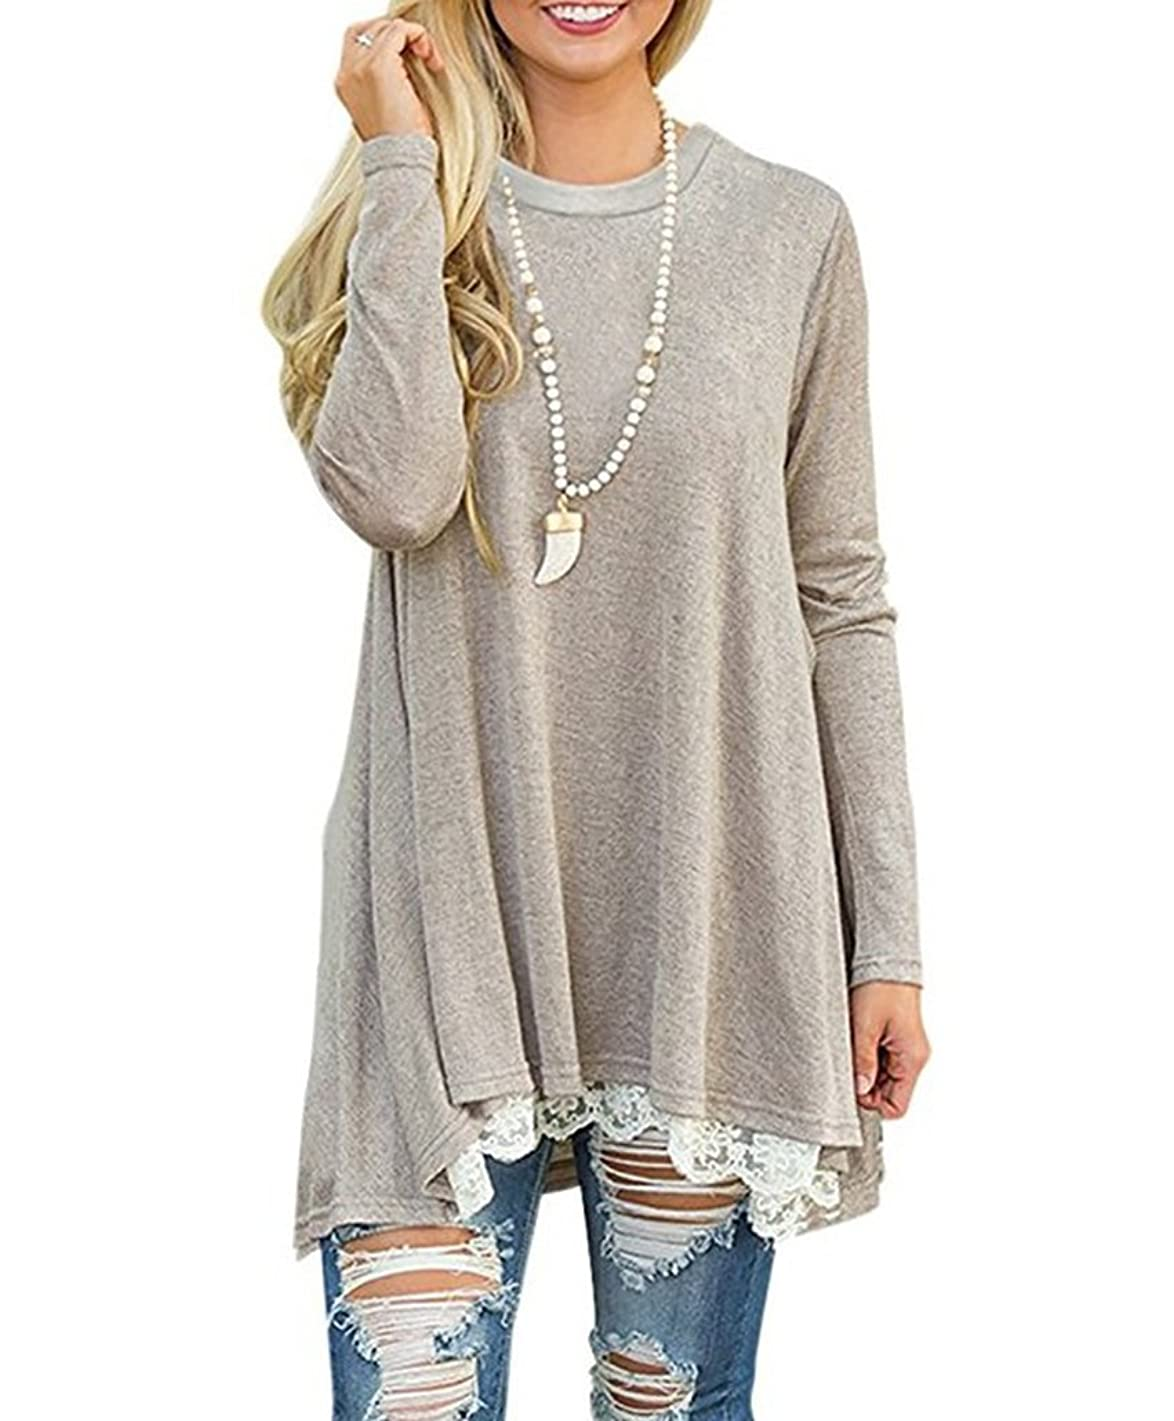 Womens Causal Lace Long Sleeve Tunic Top Blouse Loose Swing T Shirt Dress A Line Dress with Pockets